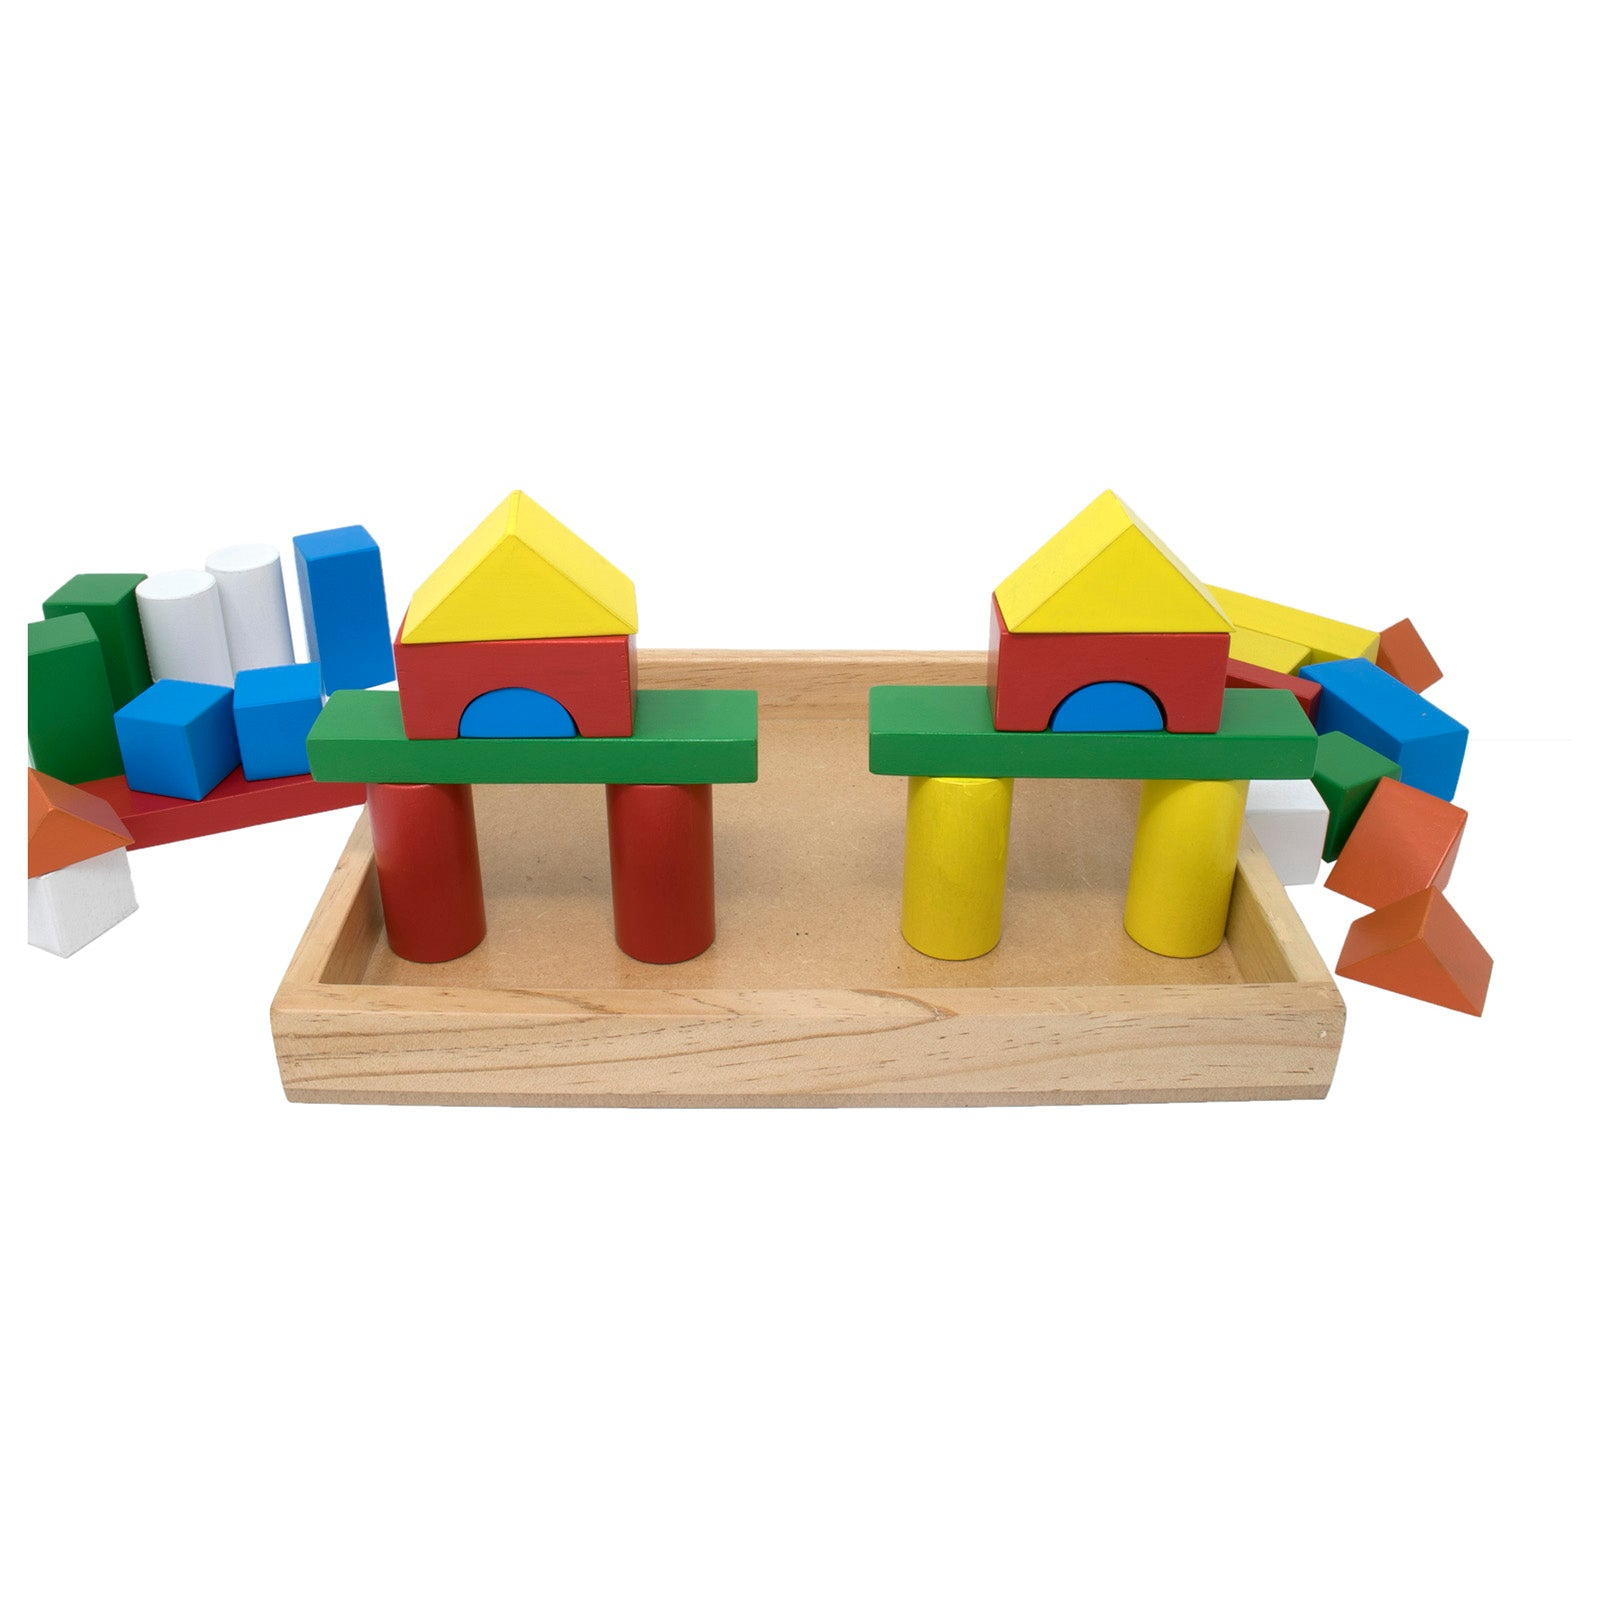 Building Blocks Early Learning Wooden Toy Educational Toy